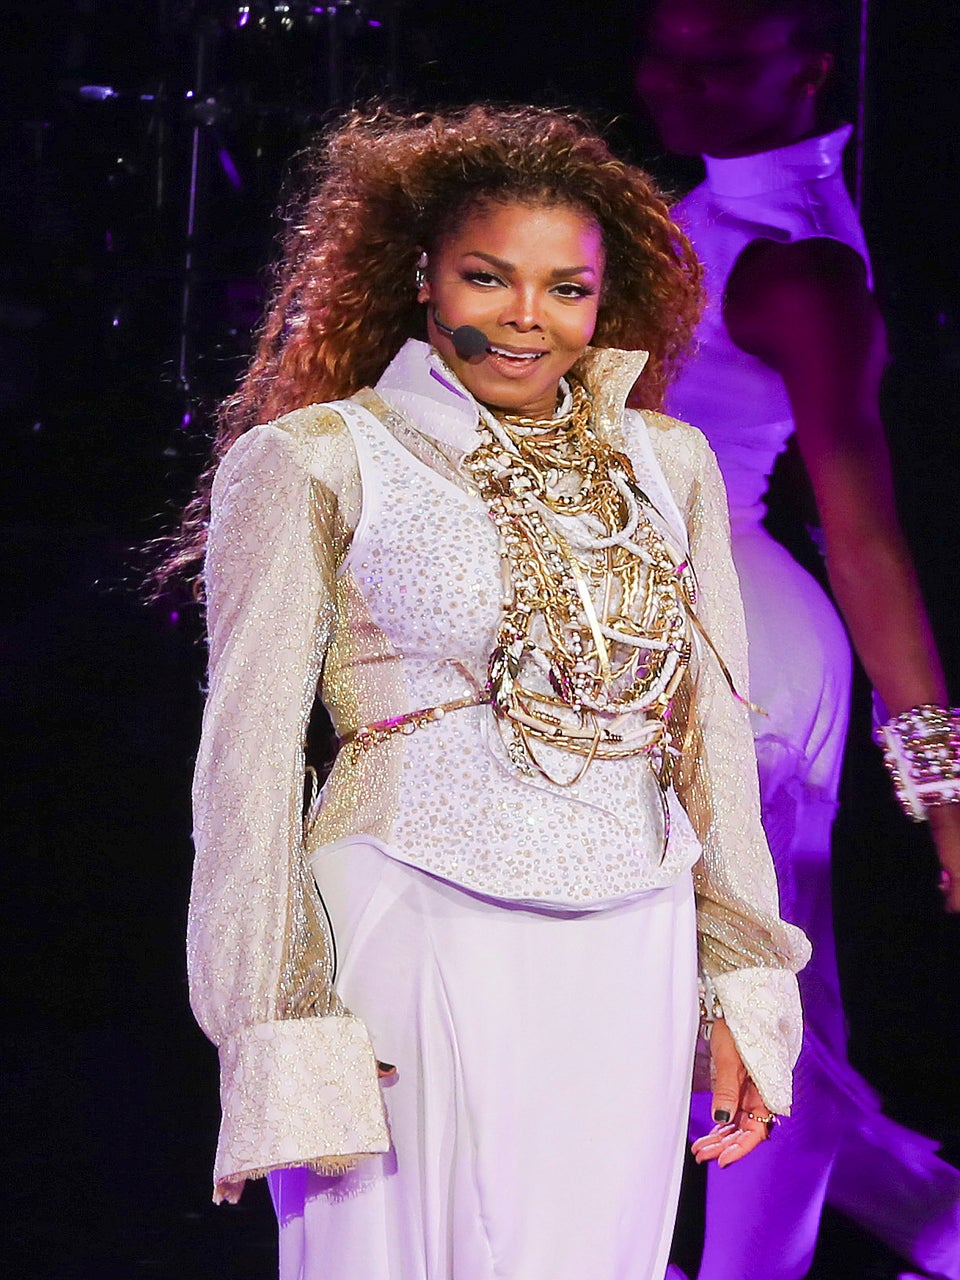 Janet Jackson Reportedly Undergoing Surgery for Throat Cancer, Postpones 'Unbreakable' World Tour